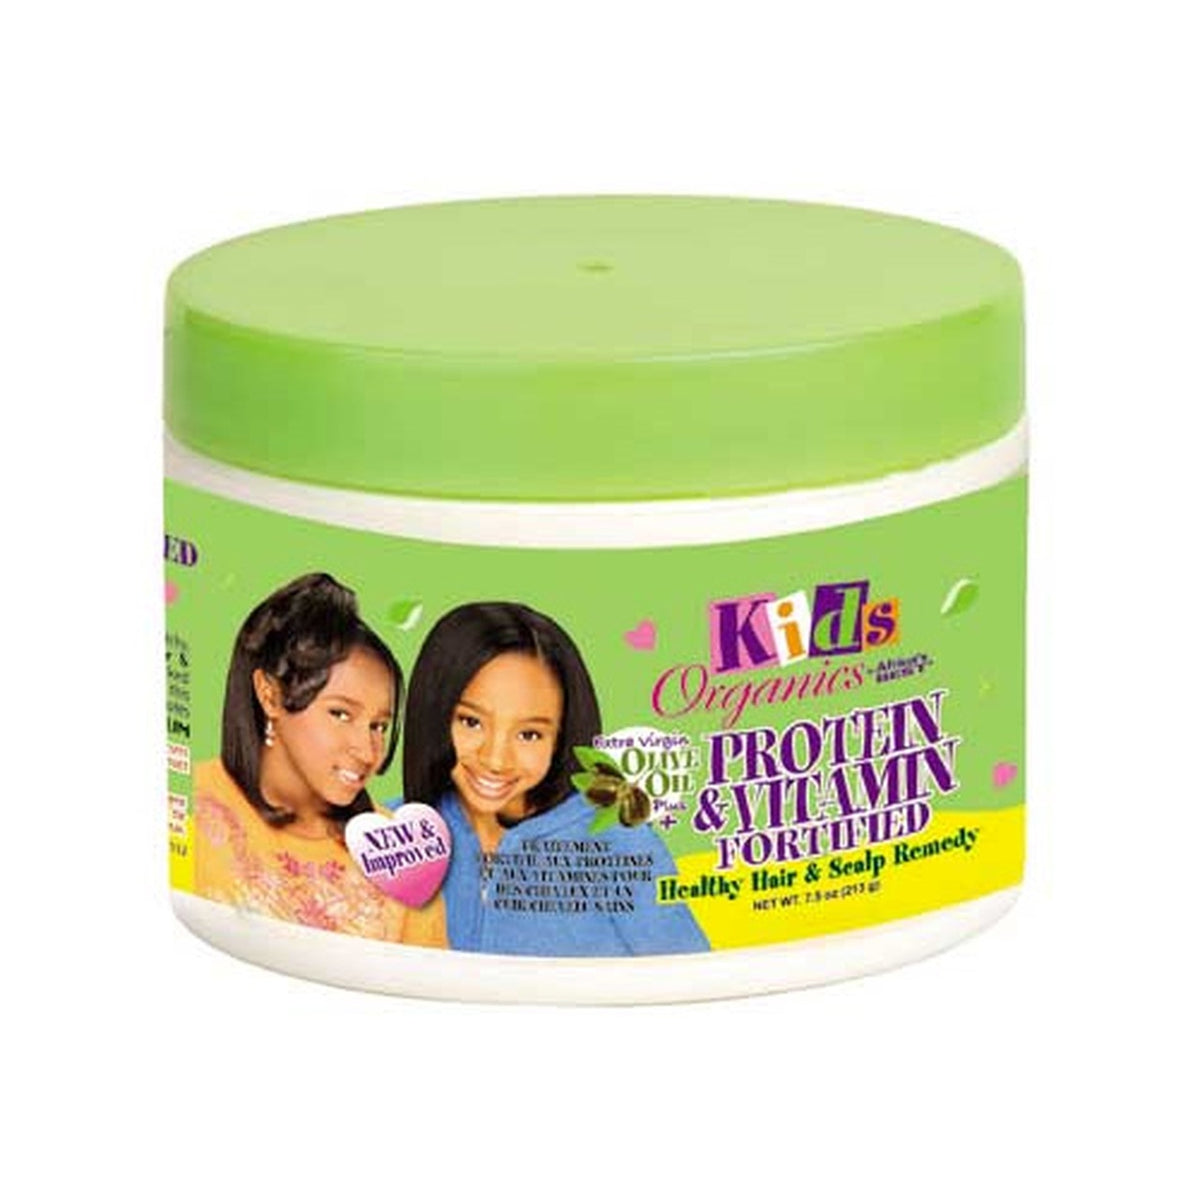 Kids Organics by Africa's Best Protein & Vitamin Fortified Hair and Scalp Remedy 7.5oz